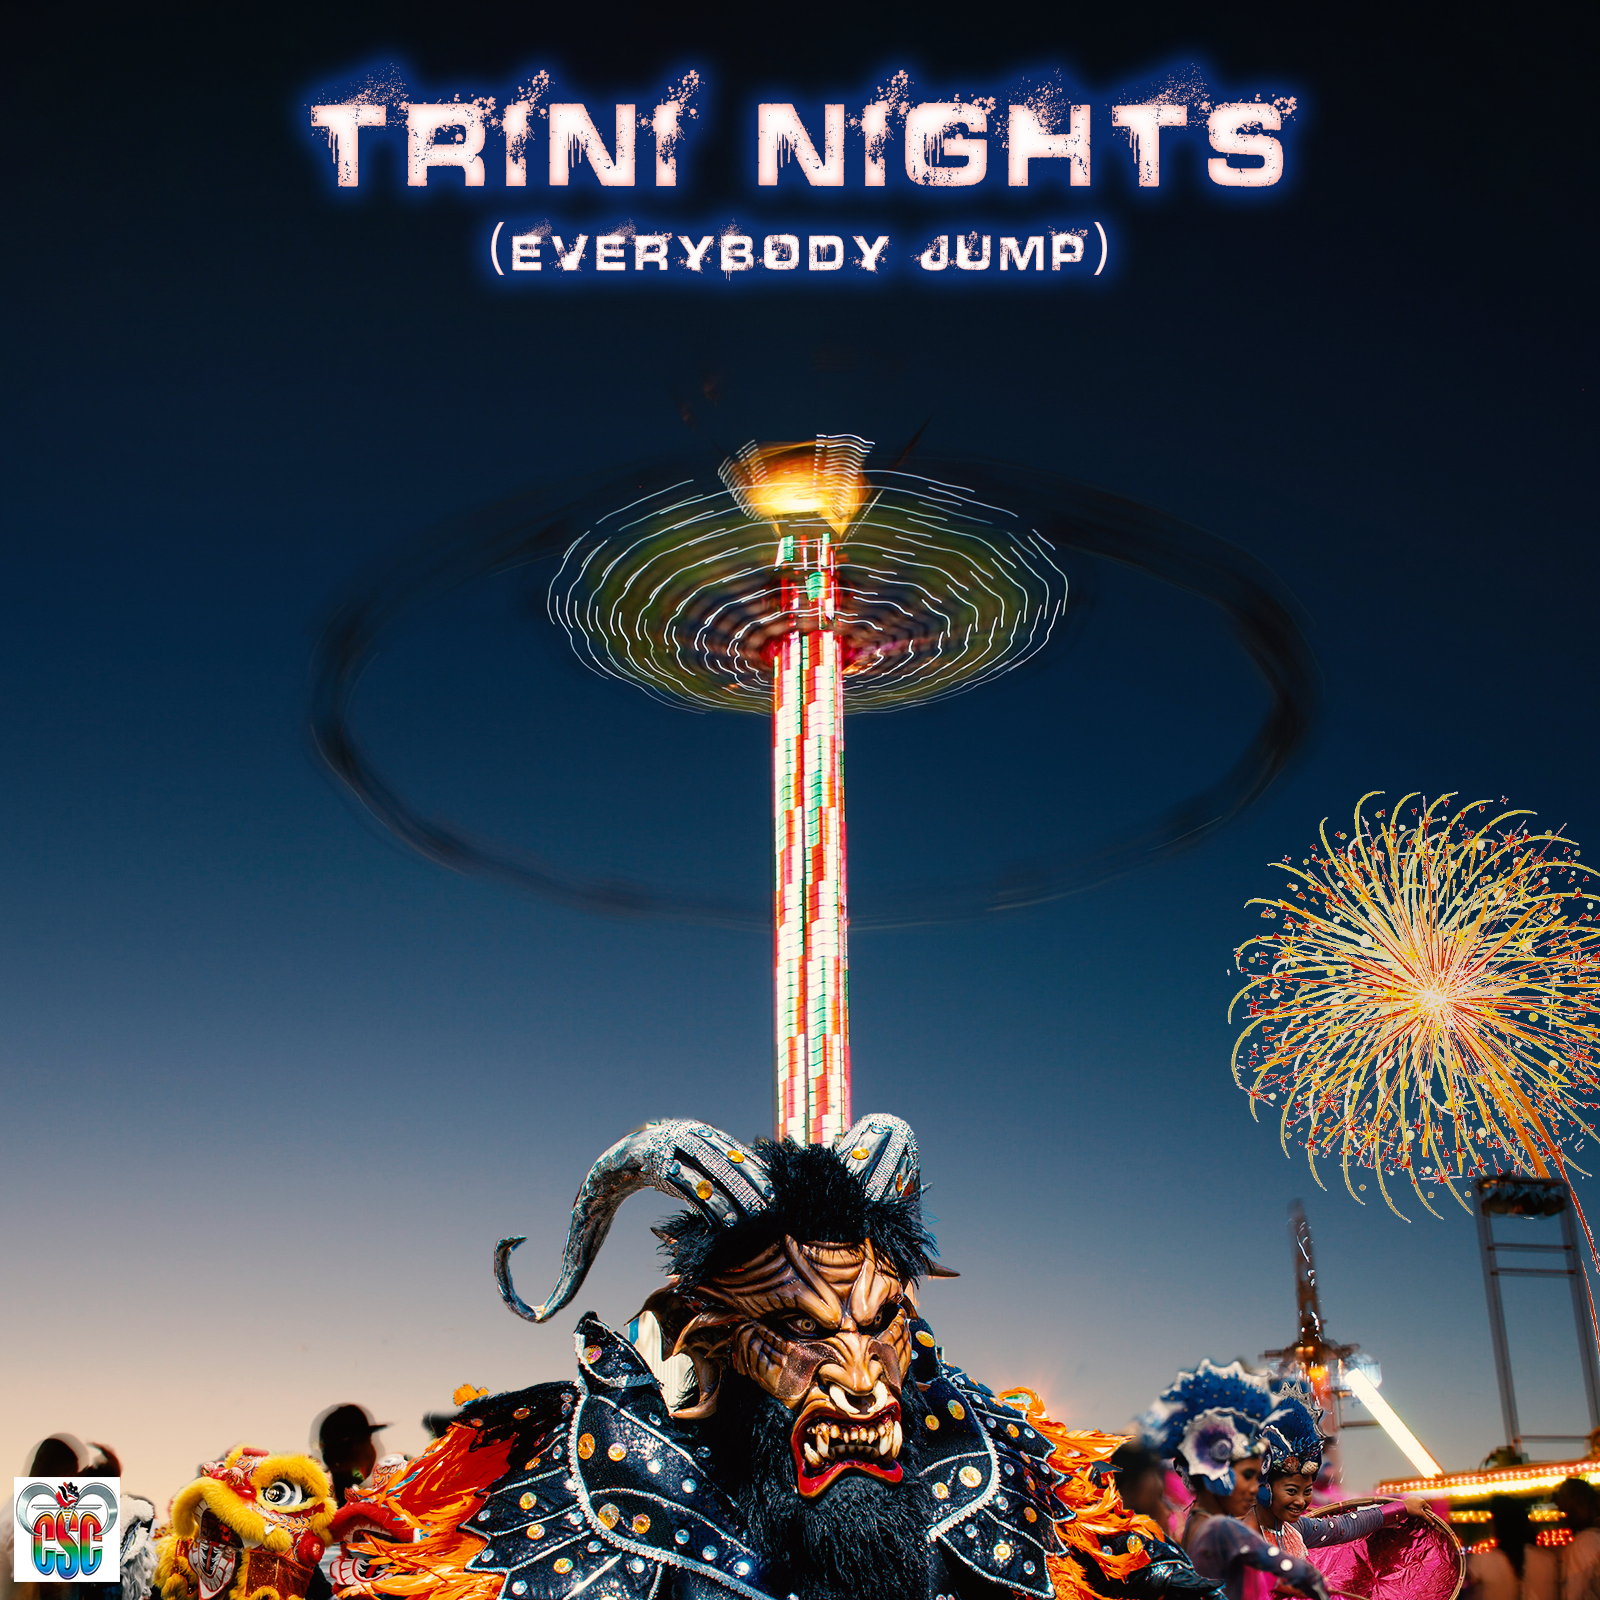 Trini-NightsEverybody-Jump-by-Cousins-STEEL--Cortez-single-cover-artwork